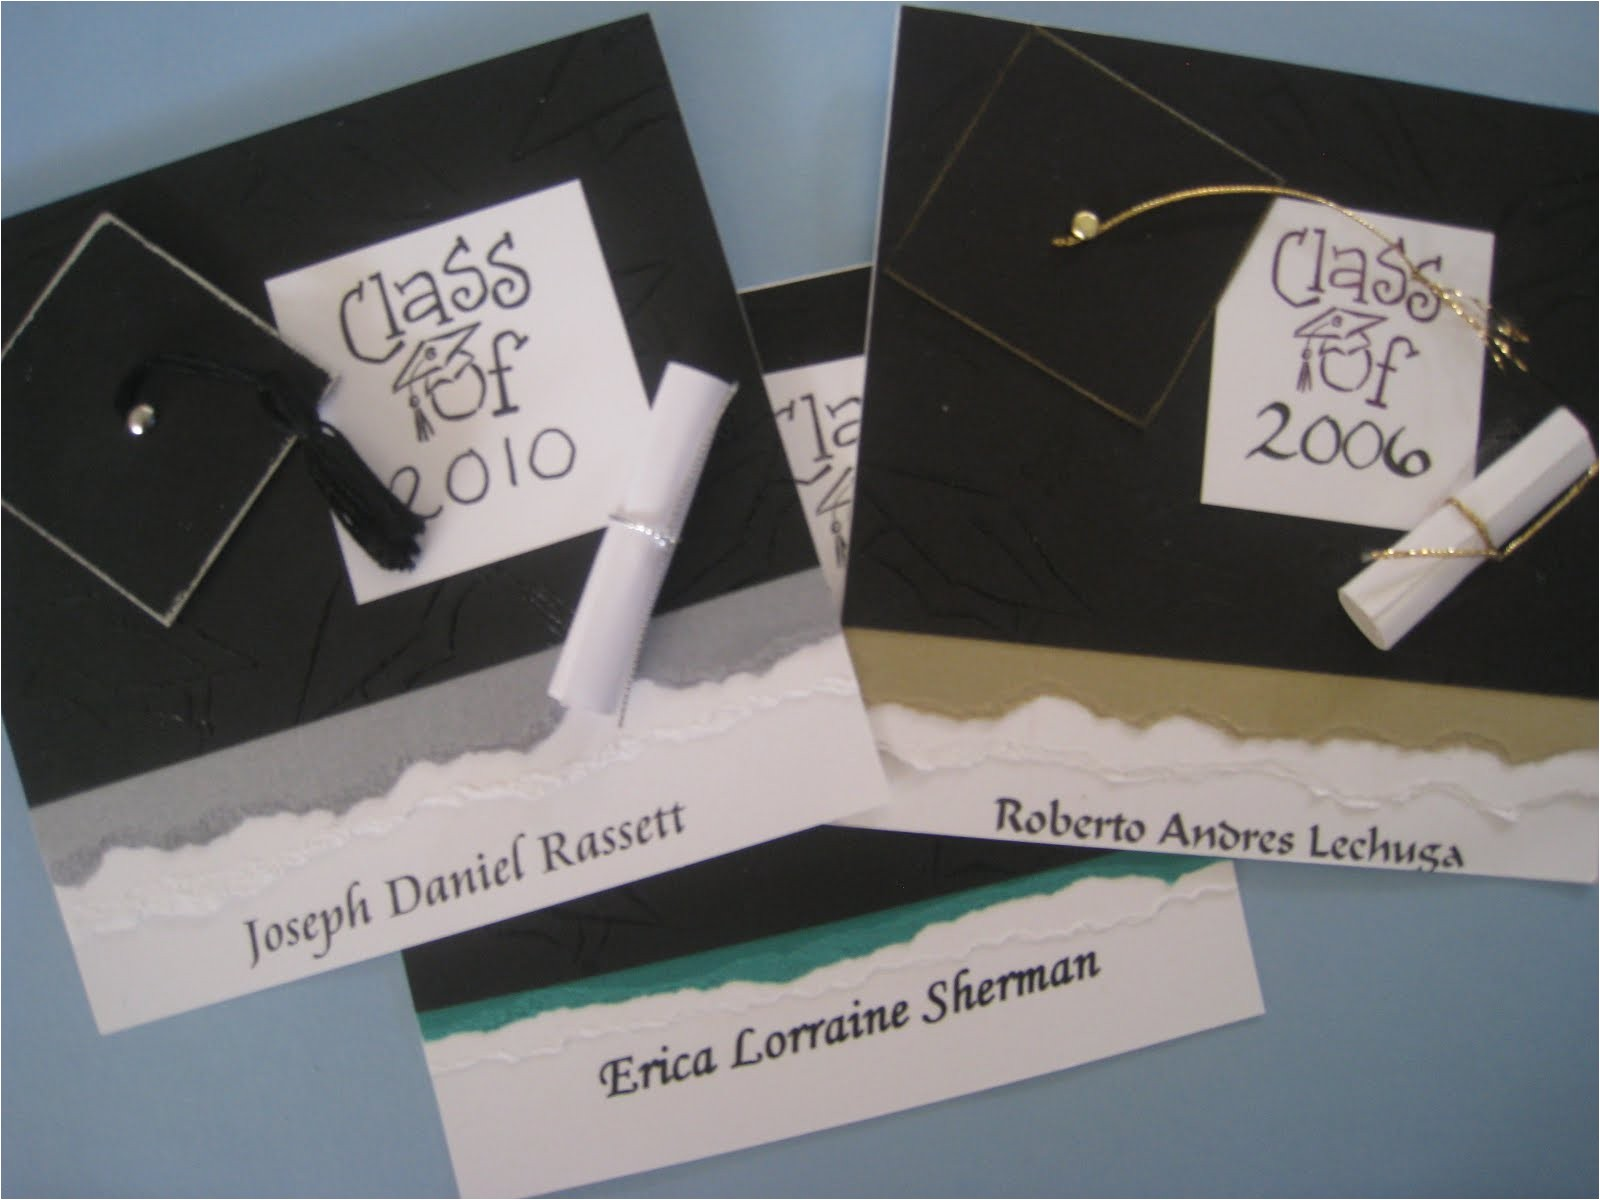 Handmade Graduation Invitations Maria 39 S Paper Gift Exchange Graduation Announcements